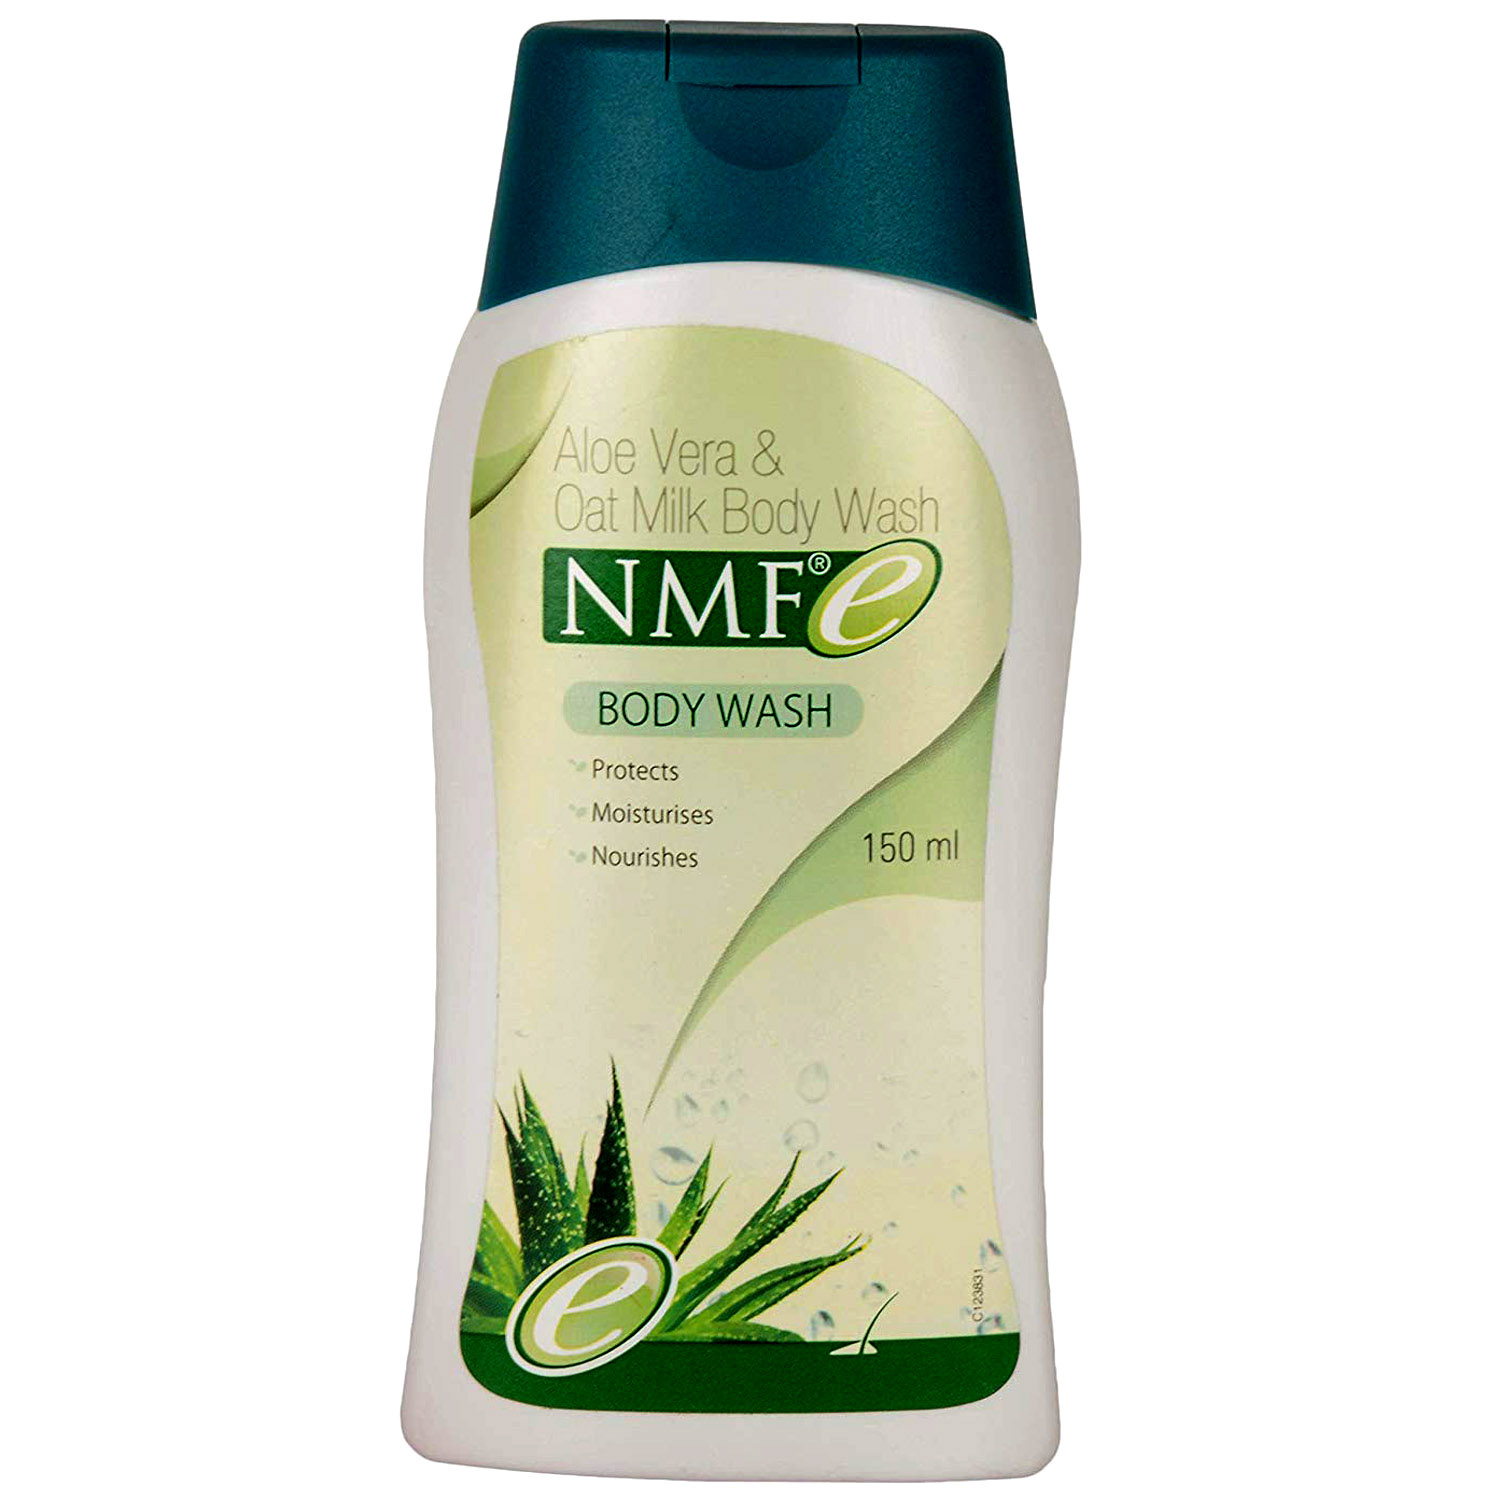 NMFe Body Wash 150ml